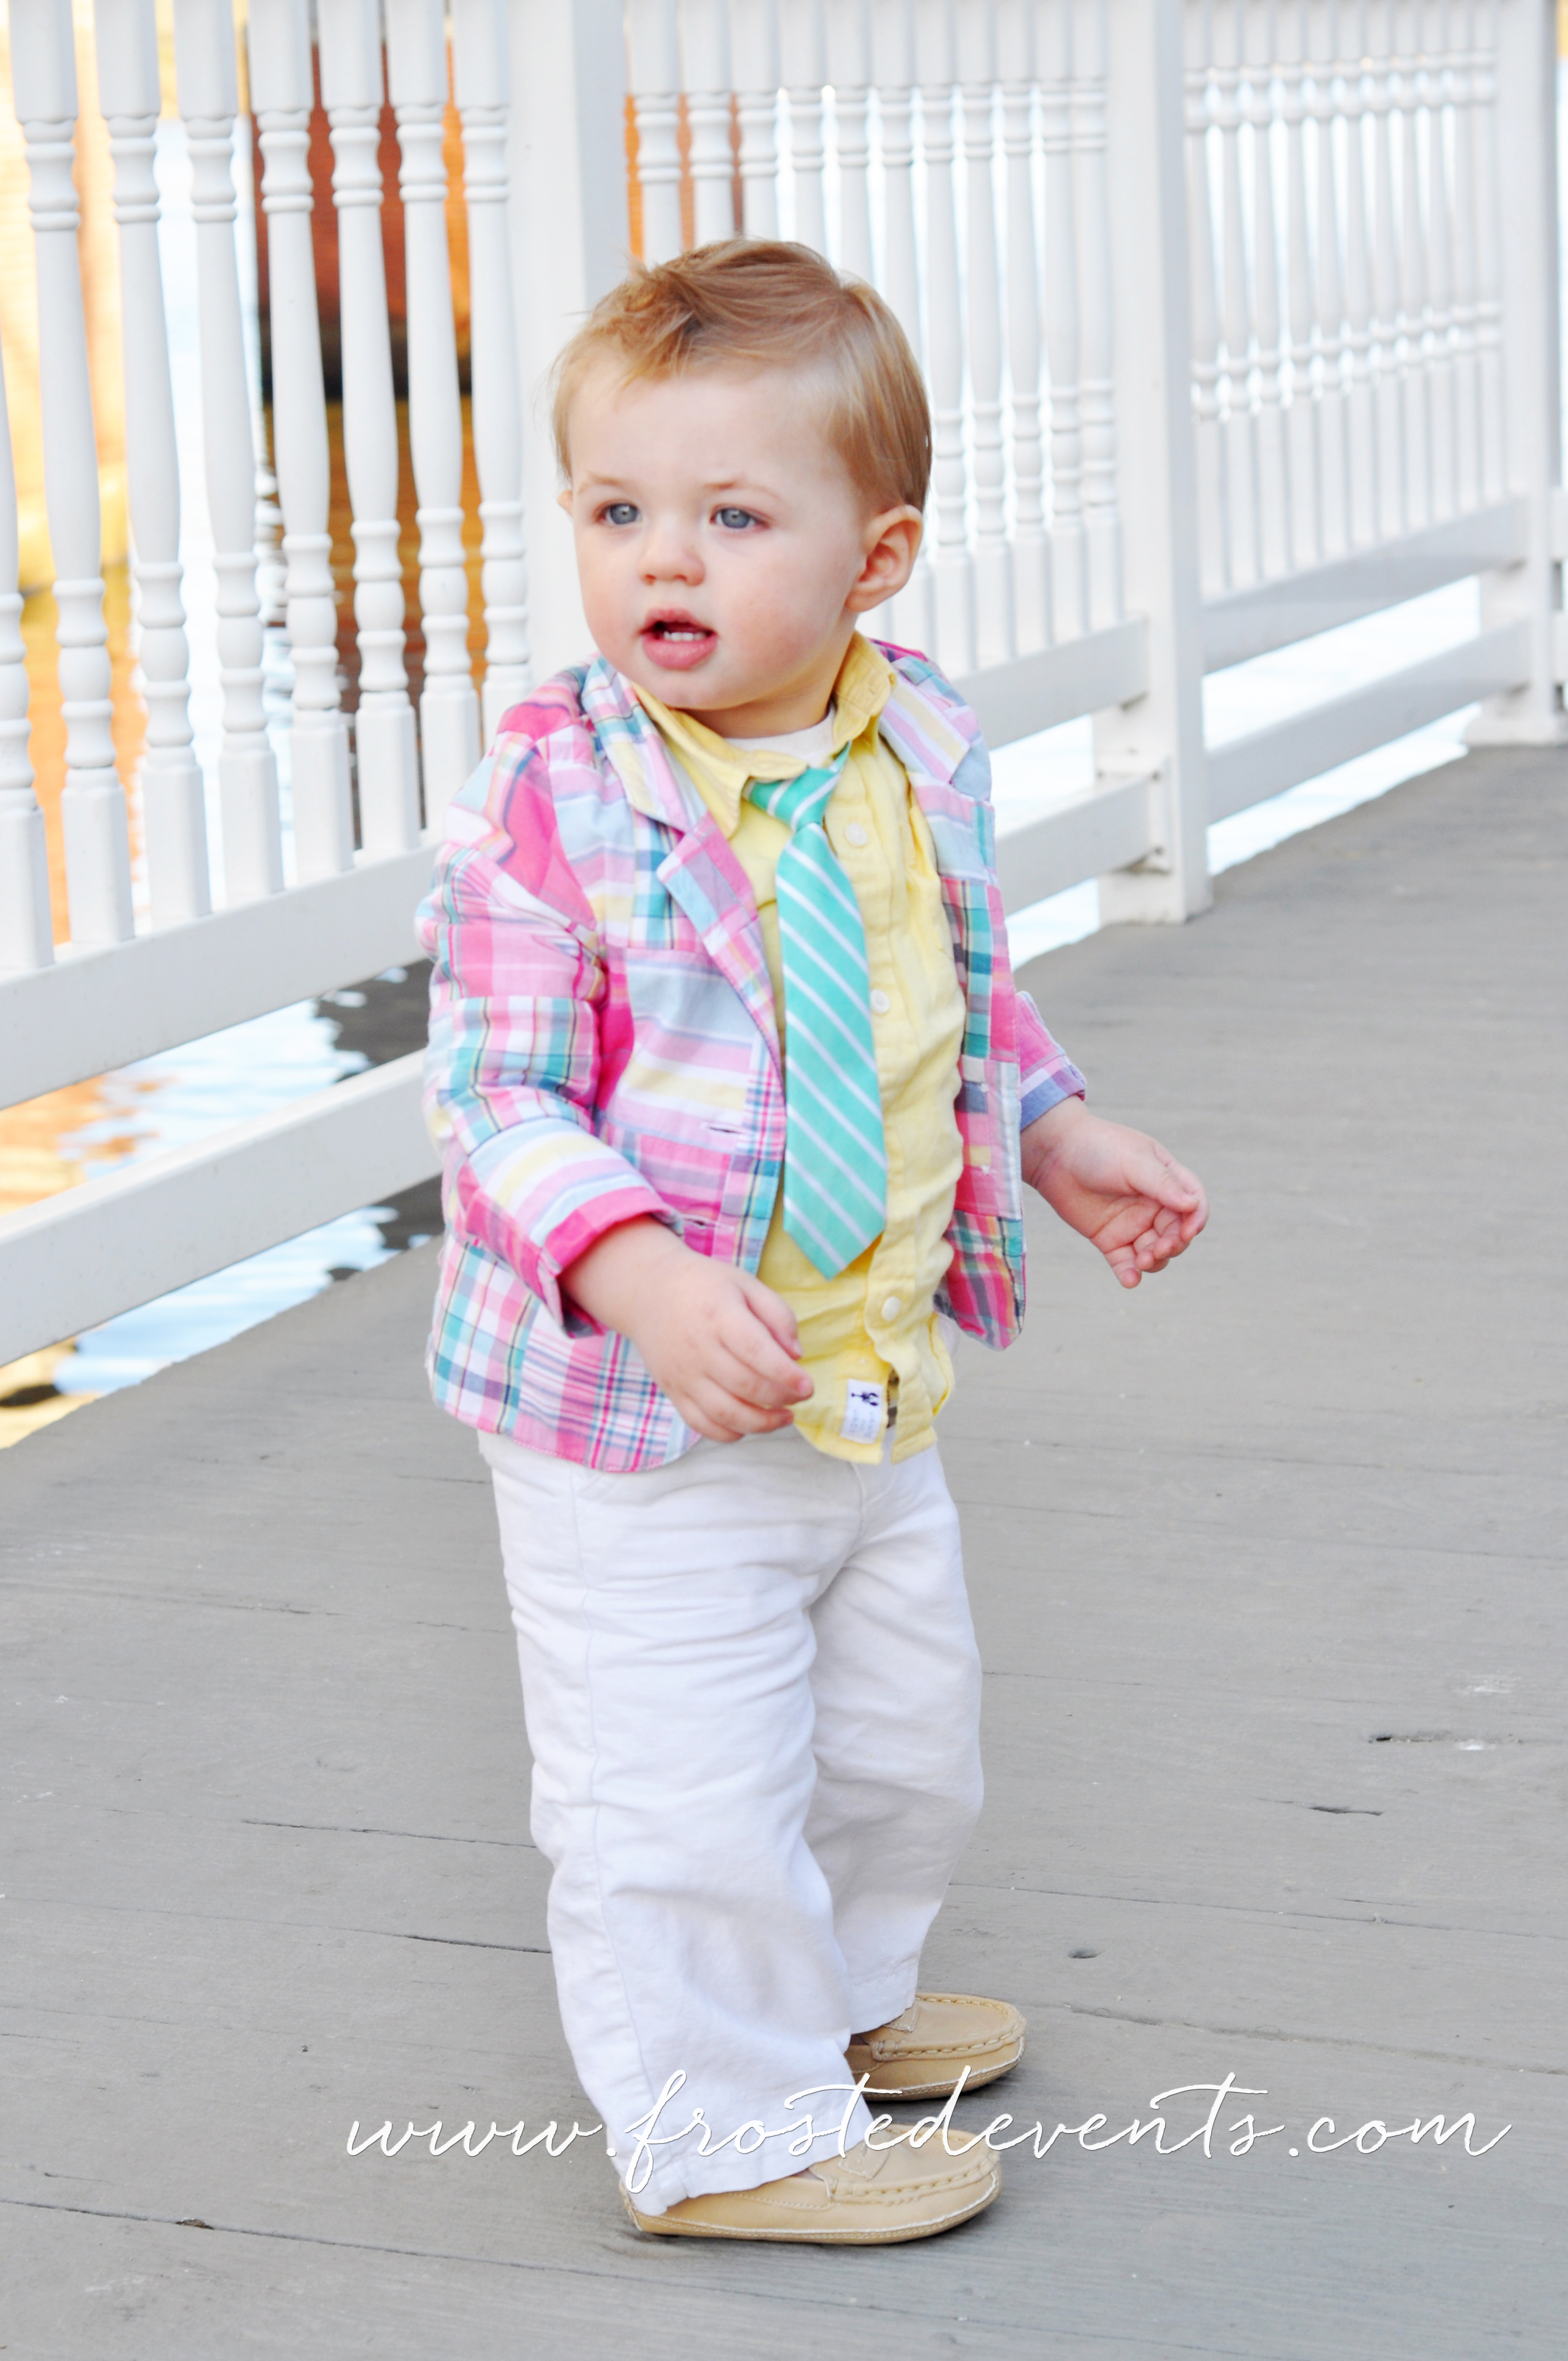 Easter egg hunt ideas, easter outfits for boys and lots of fun easter ideas for kids @frostedevents #easter